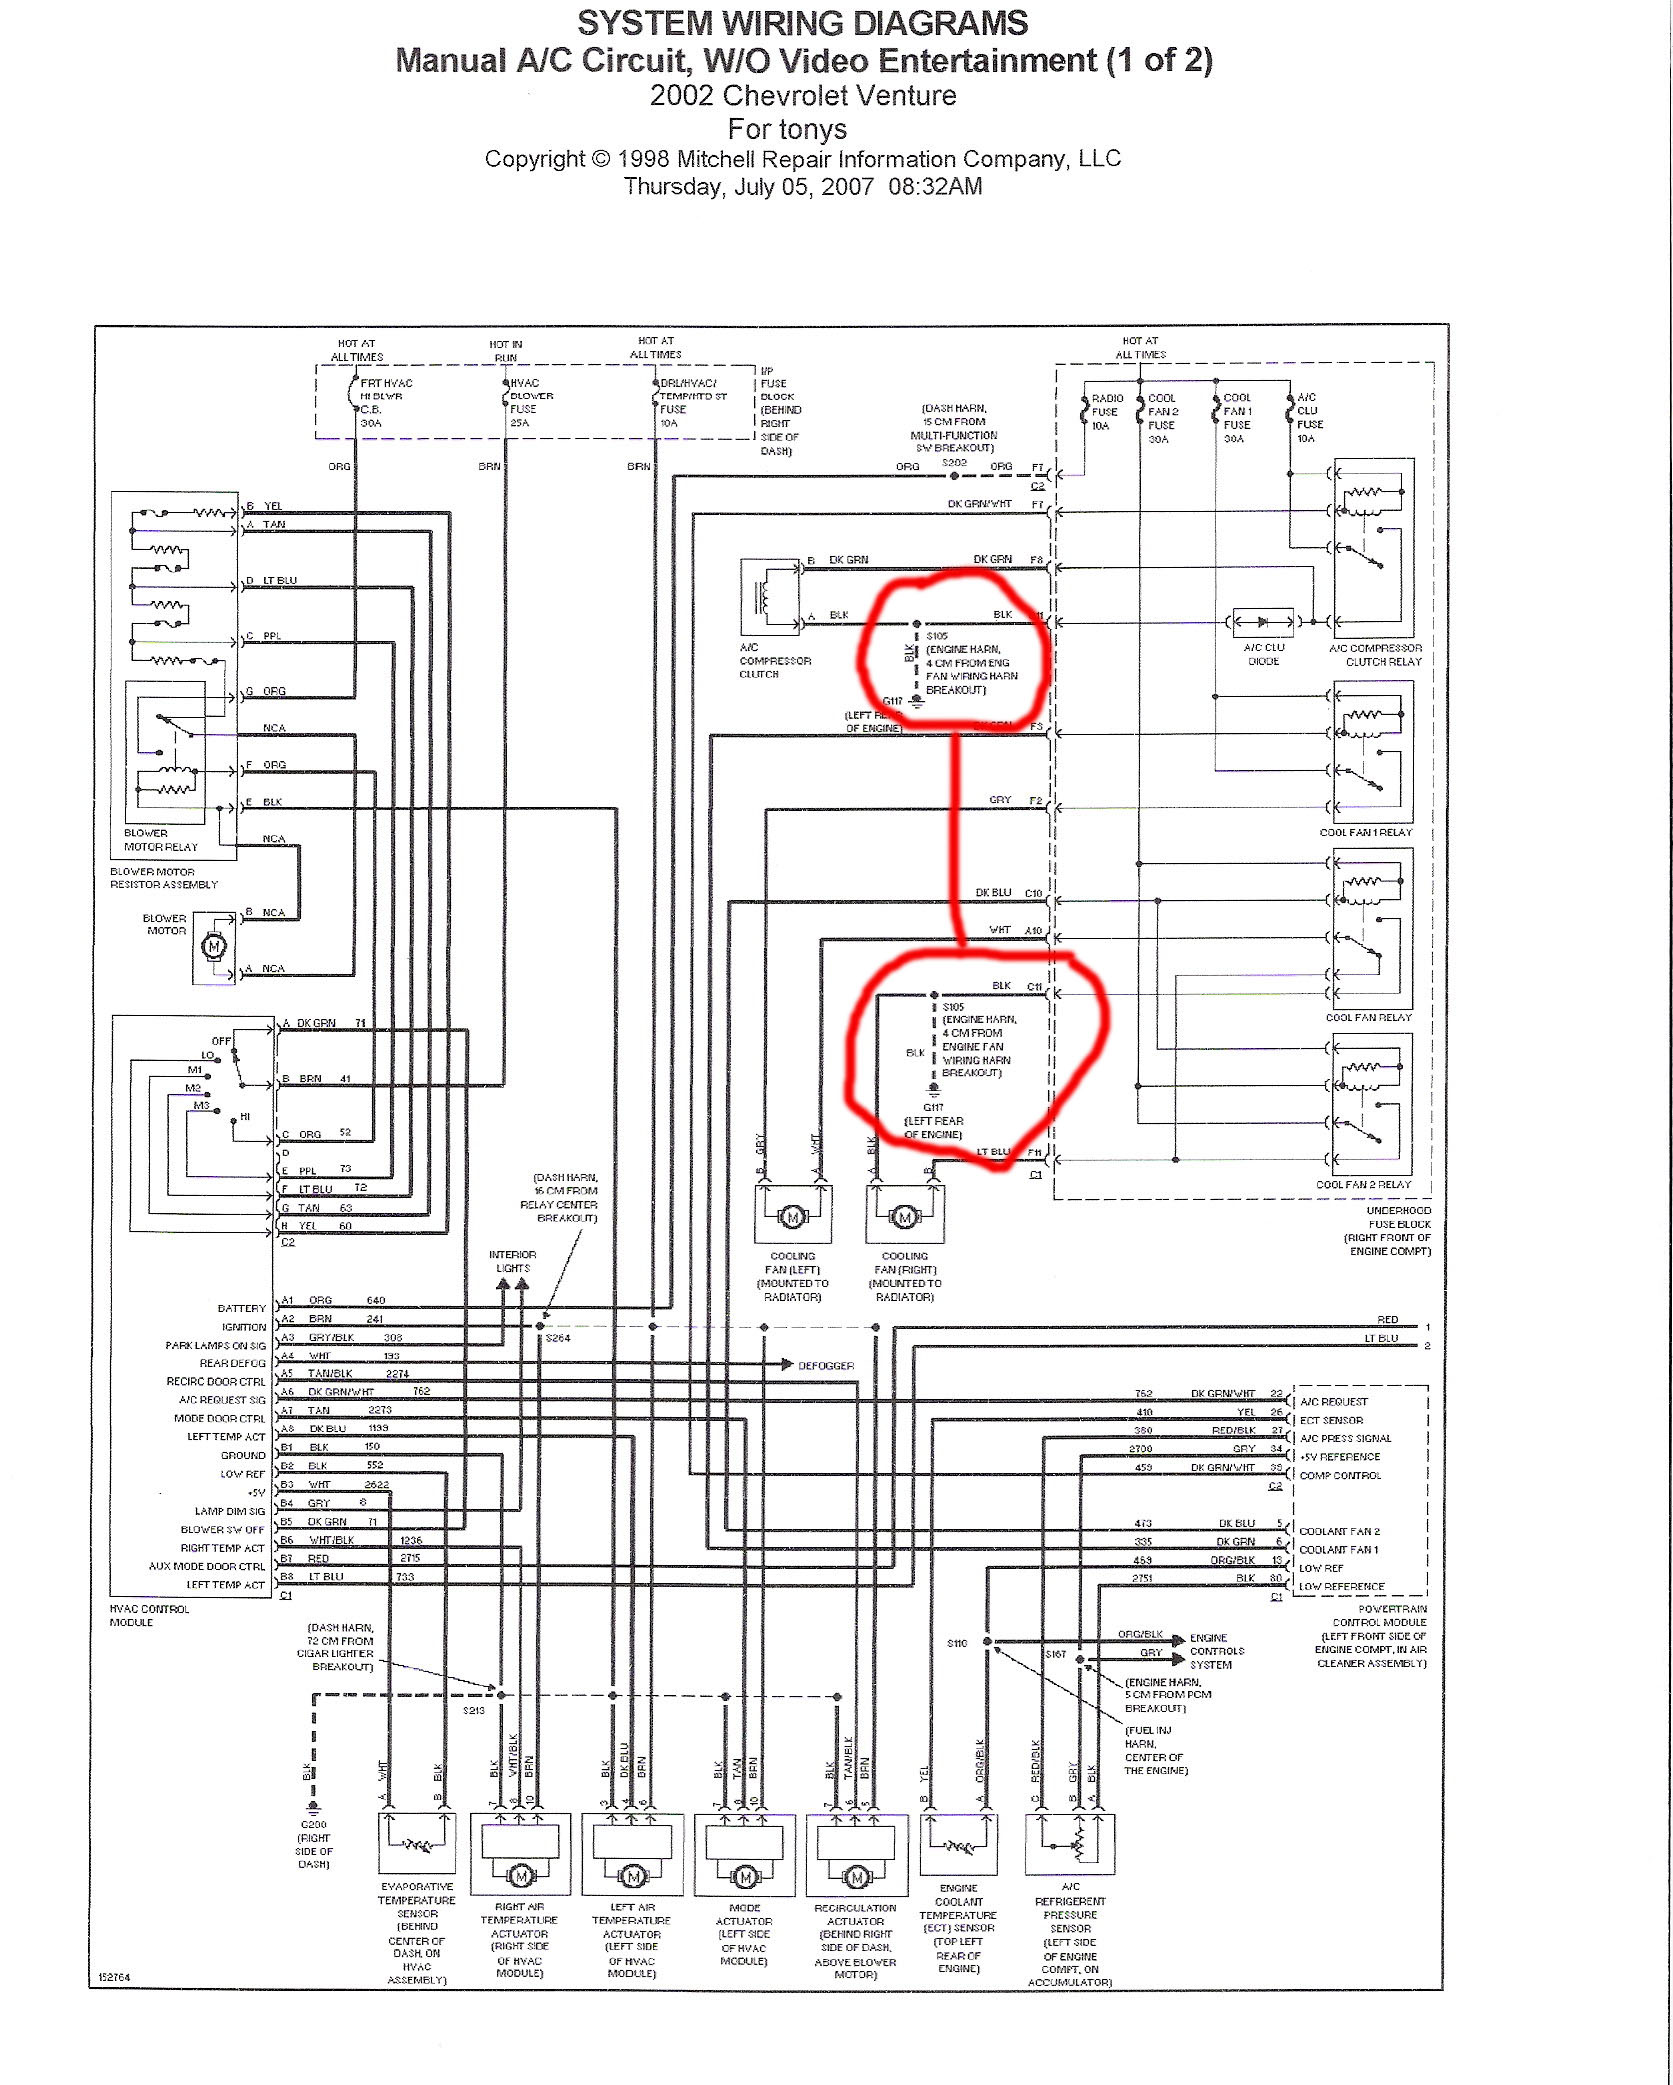 gm fan wiring gm fan wiring gm solenoid wiring wiring diagram blogs  gm solenoid wiring wiring diagram